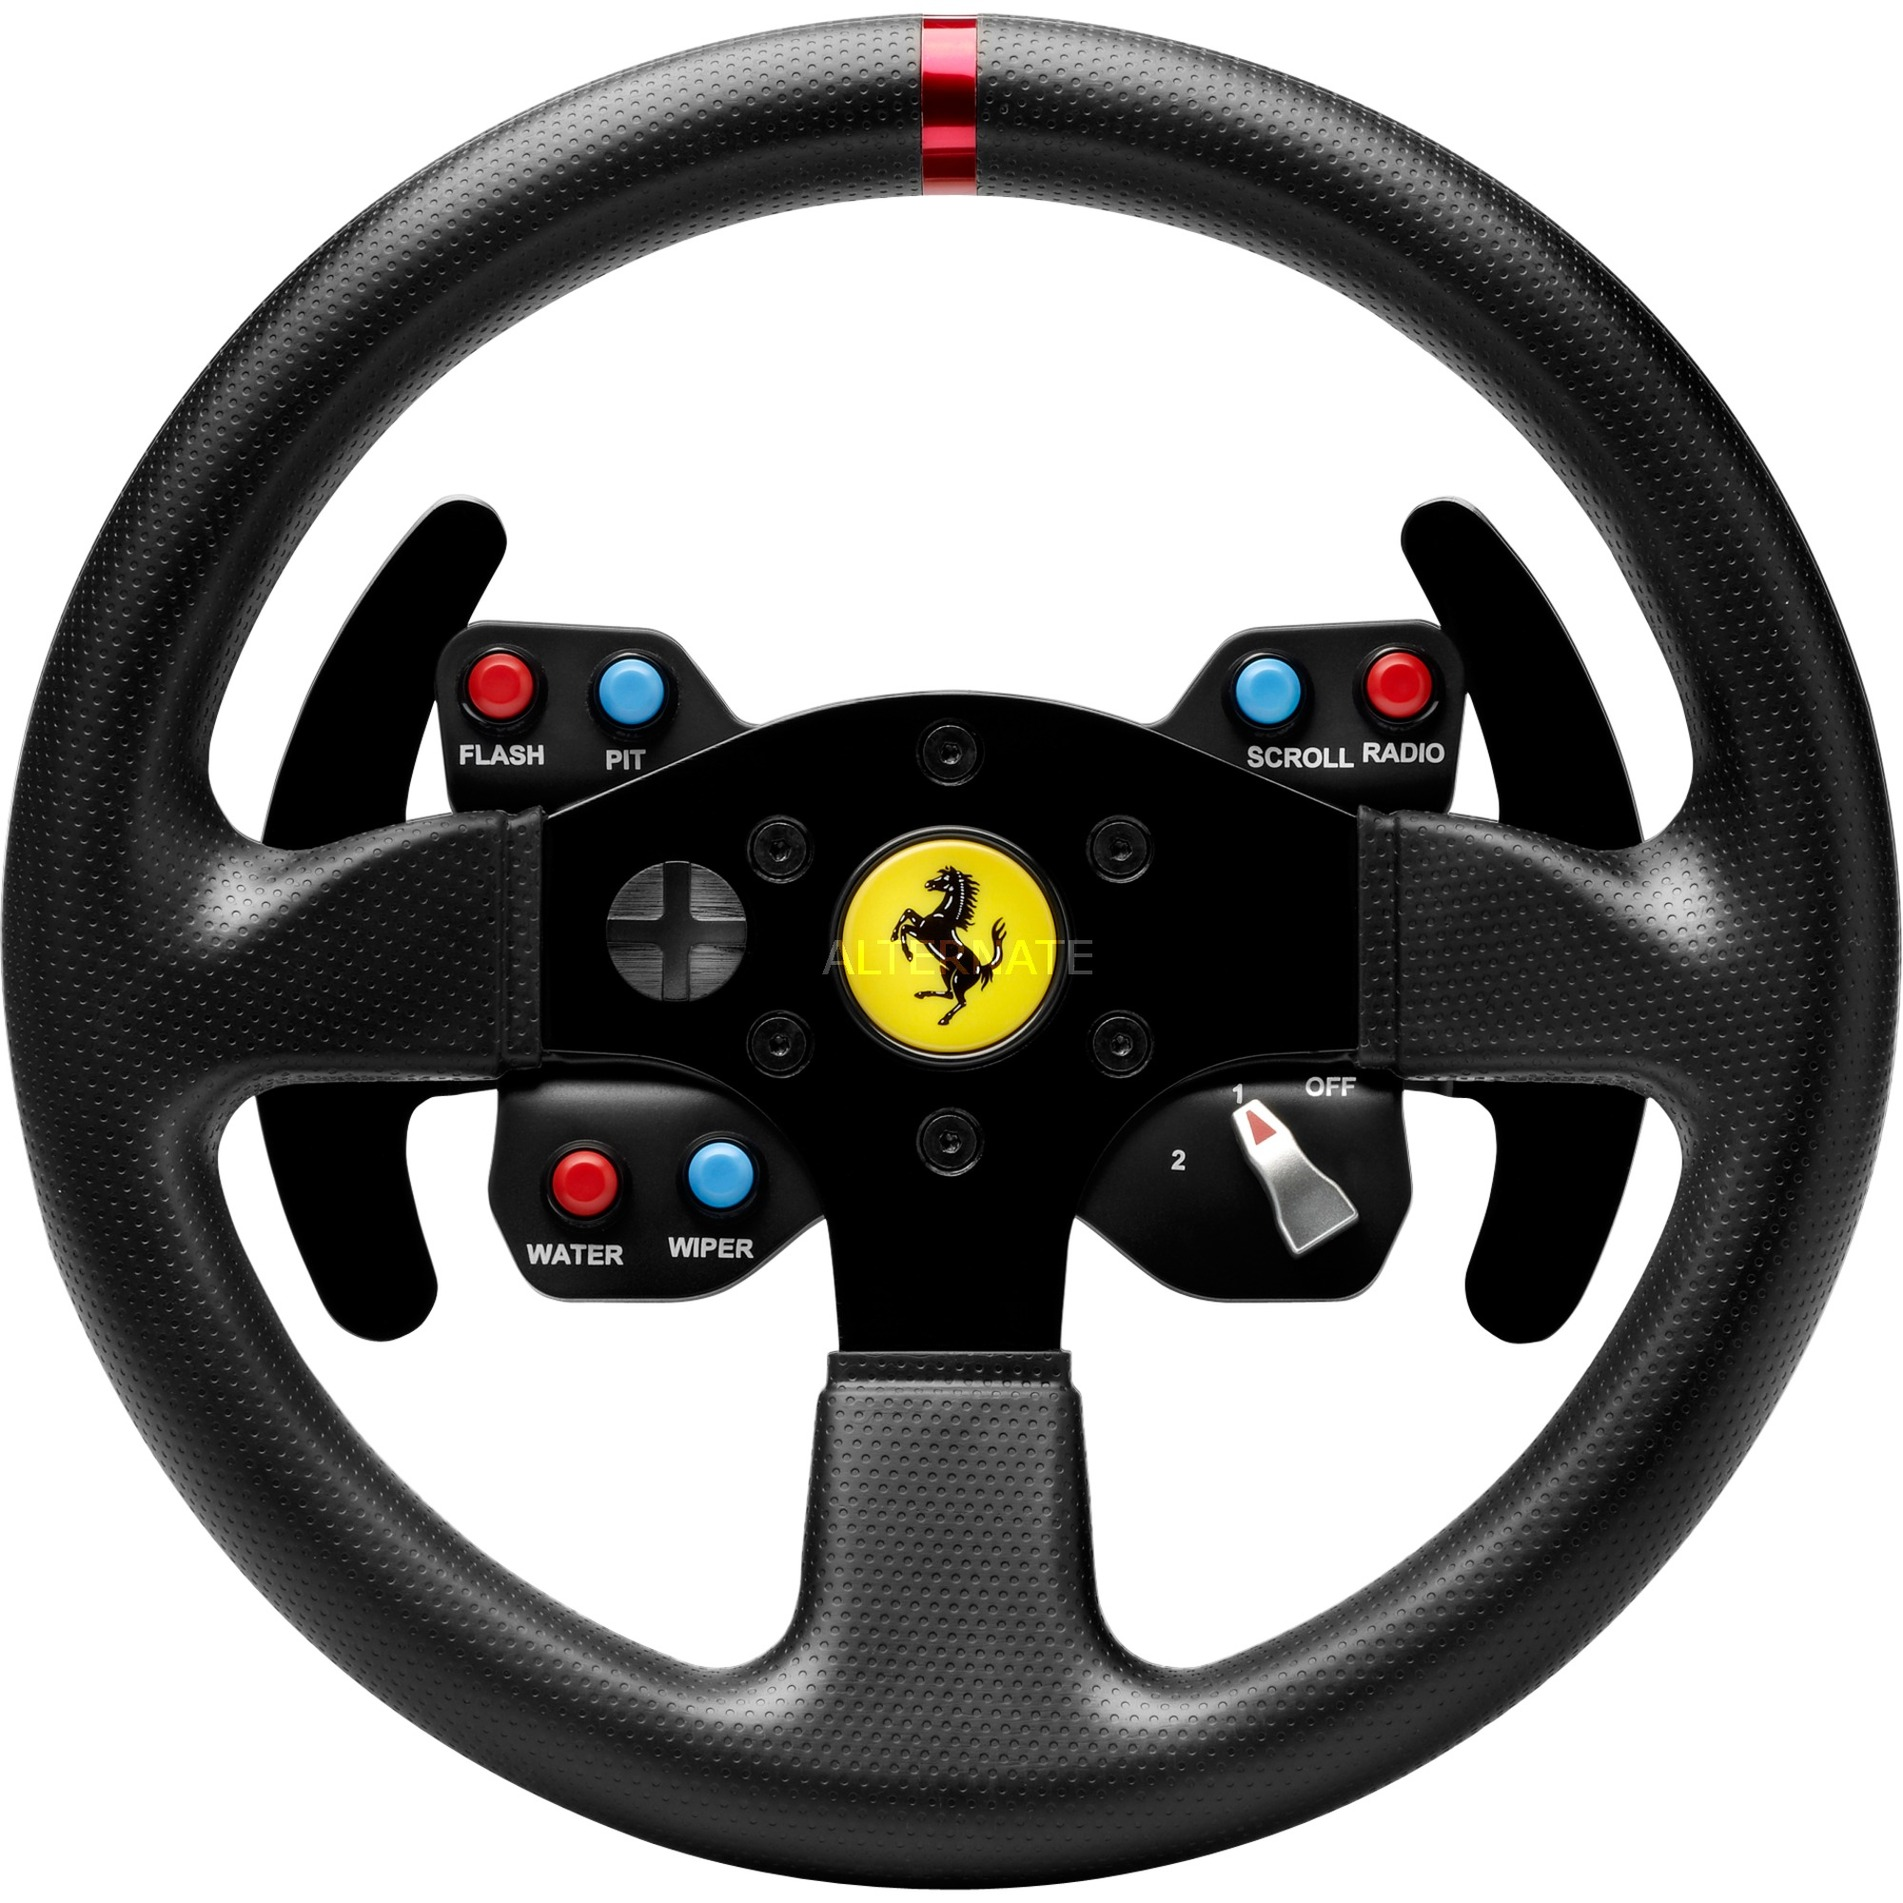 Ferrari 458 Challenge Wheel Add-On Volante PC,Playstation 3 Negro, Volante de recambio